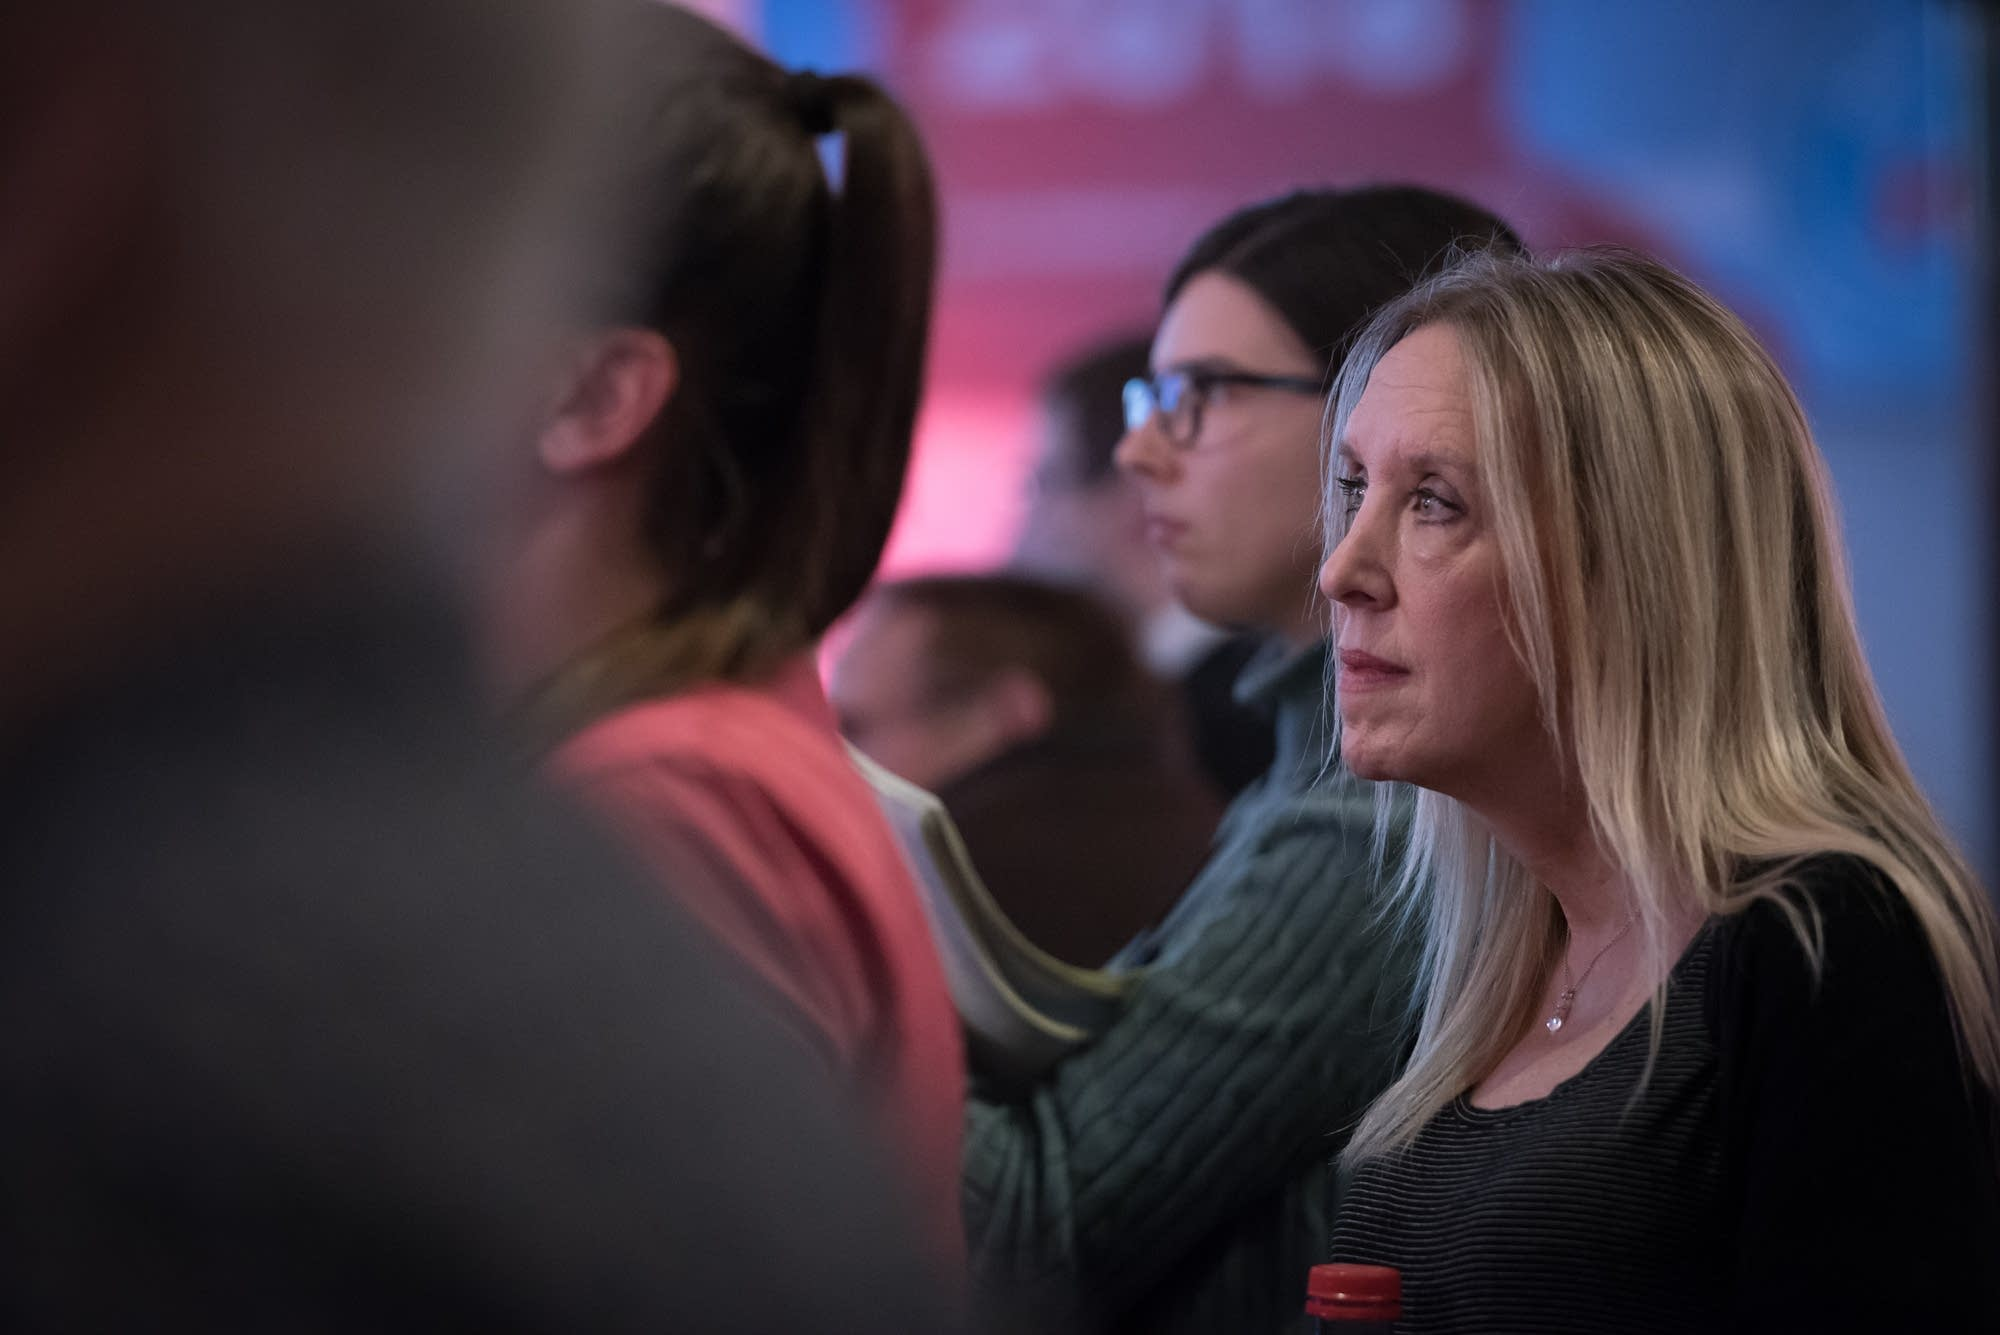 A woman listens to Jeff Johnson's concession speech.